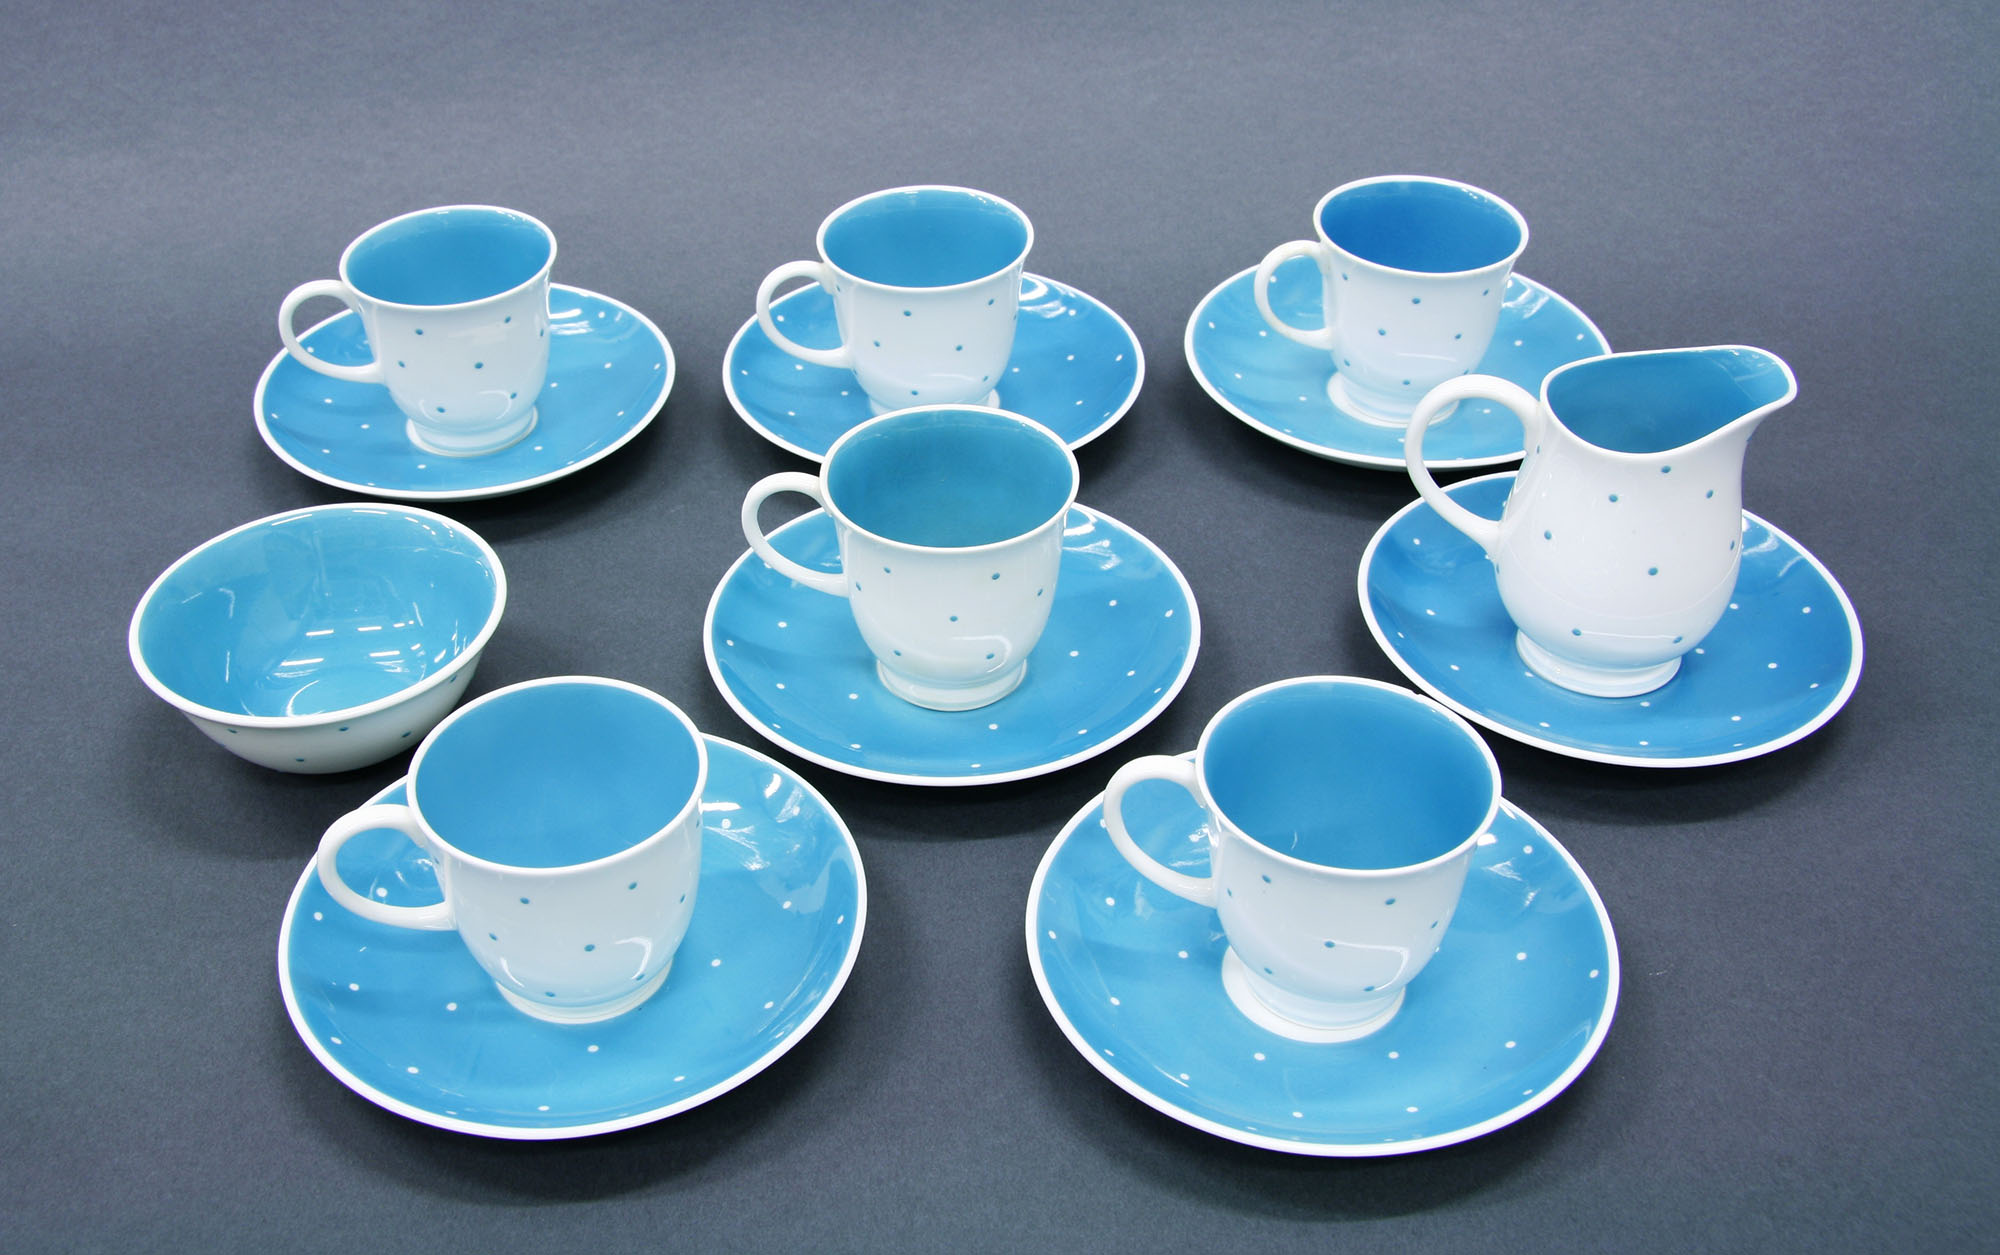 A set of blue and white cups and saucers